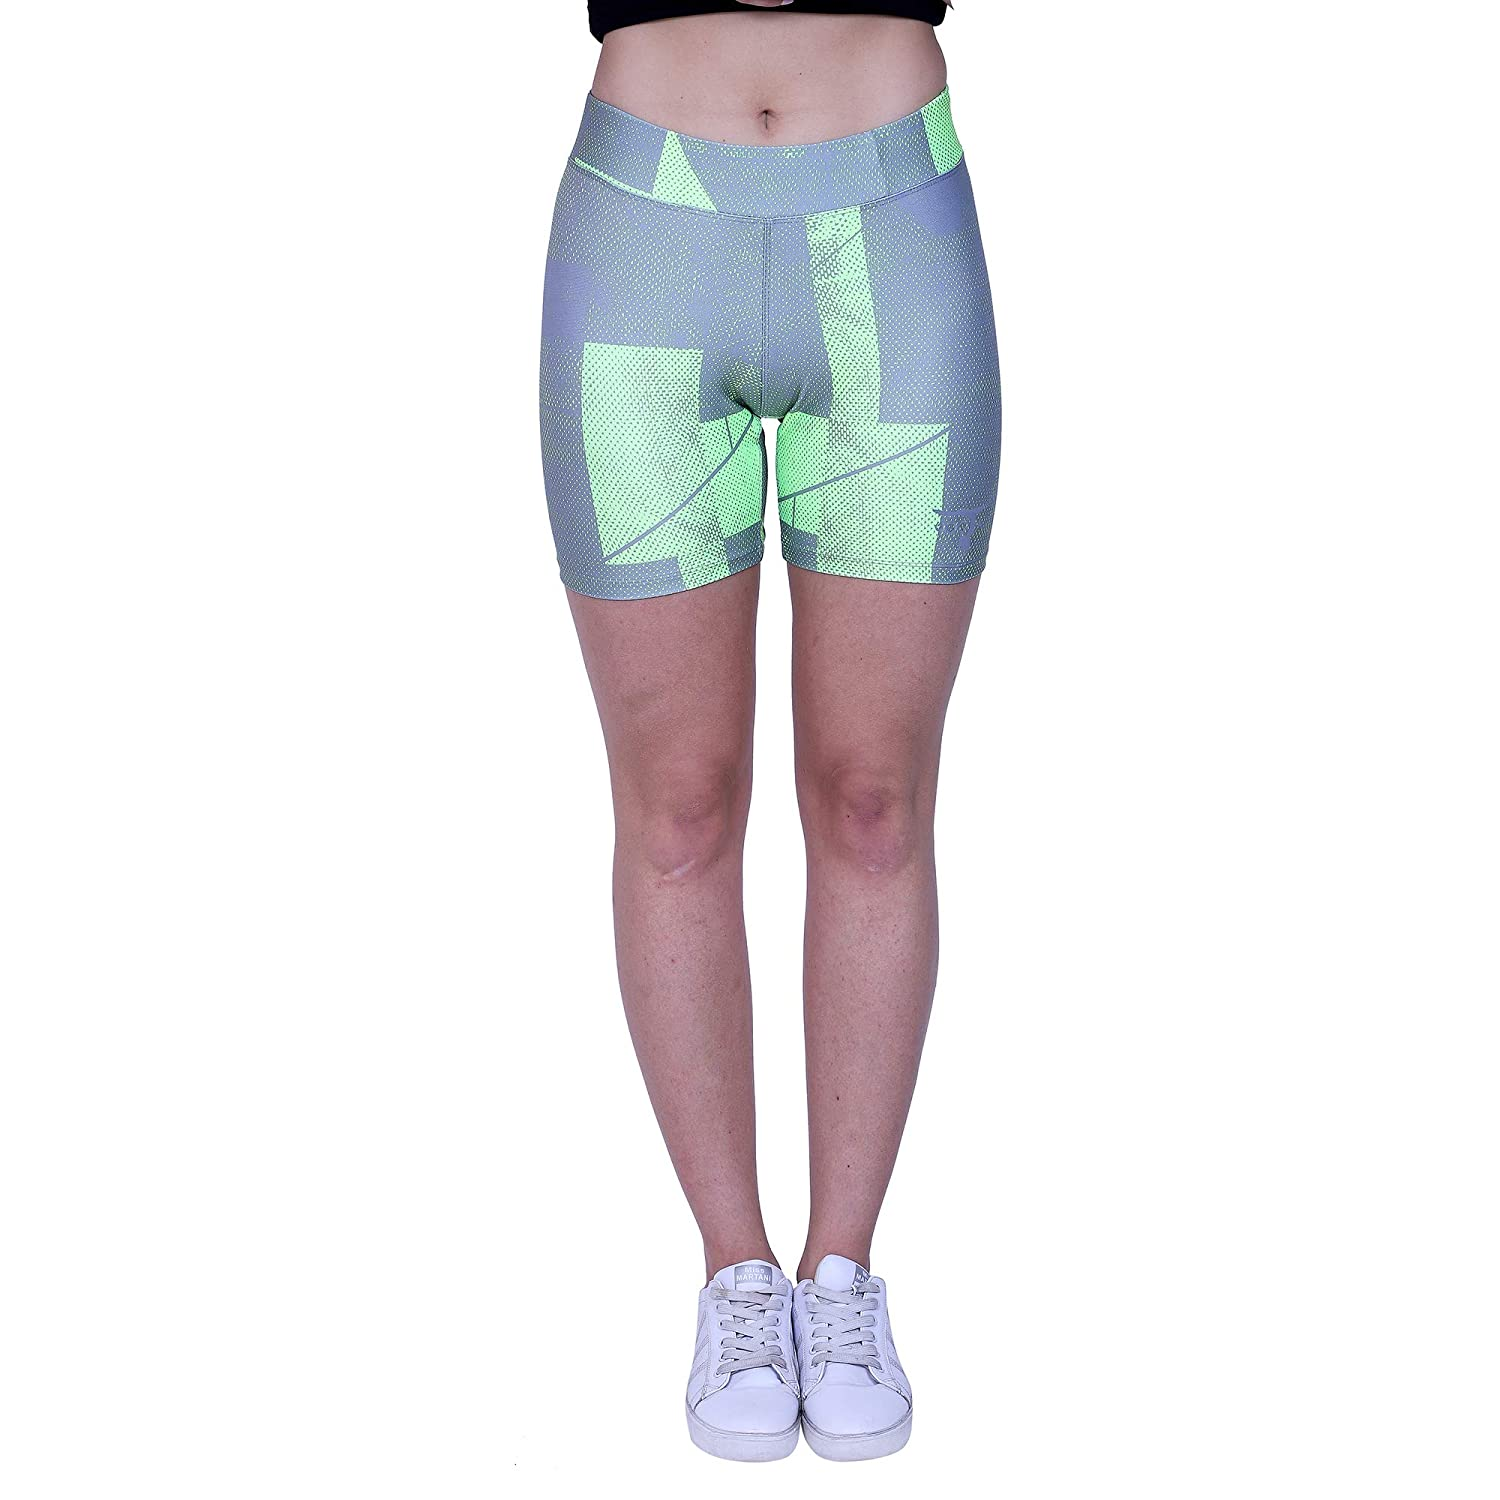 c65e8a18eb50e YOGAIR Ultra Soft Printed Shorts for Women Workout Yoga Capri Athletic  Tummy Control Shorts: Amazon.in: Sports, Fitness & Outdoors